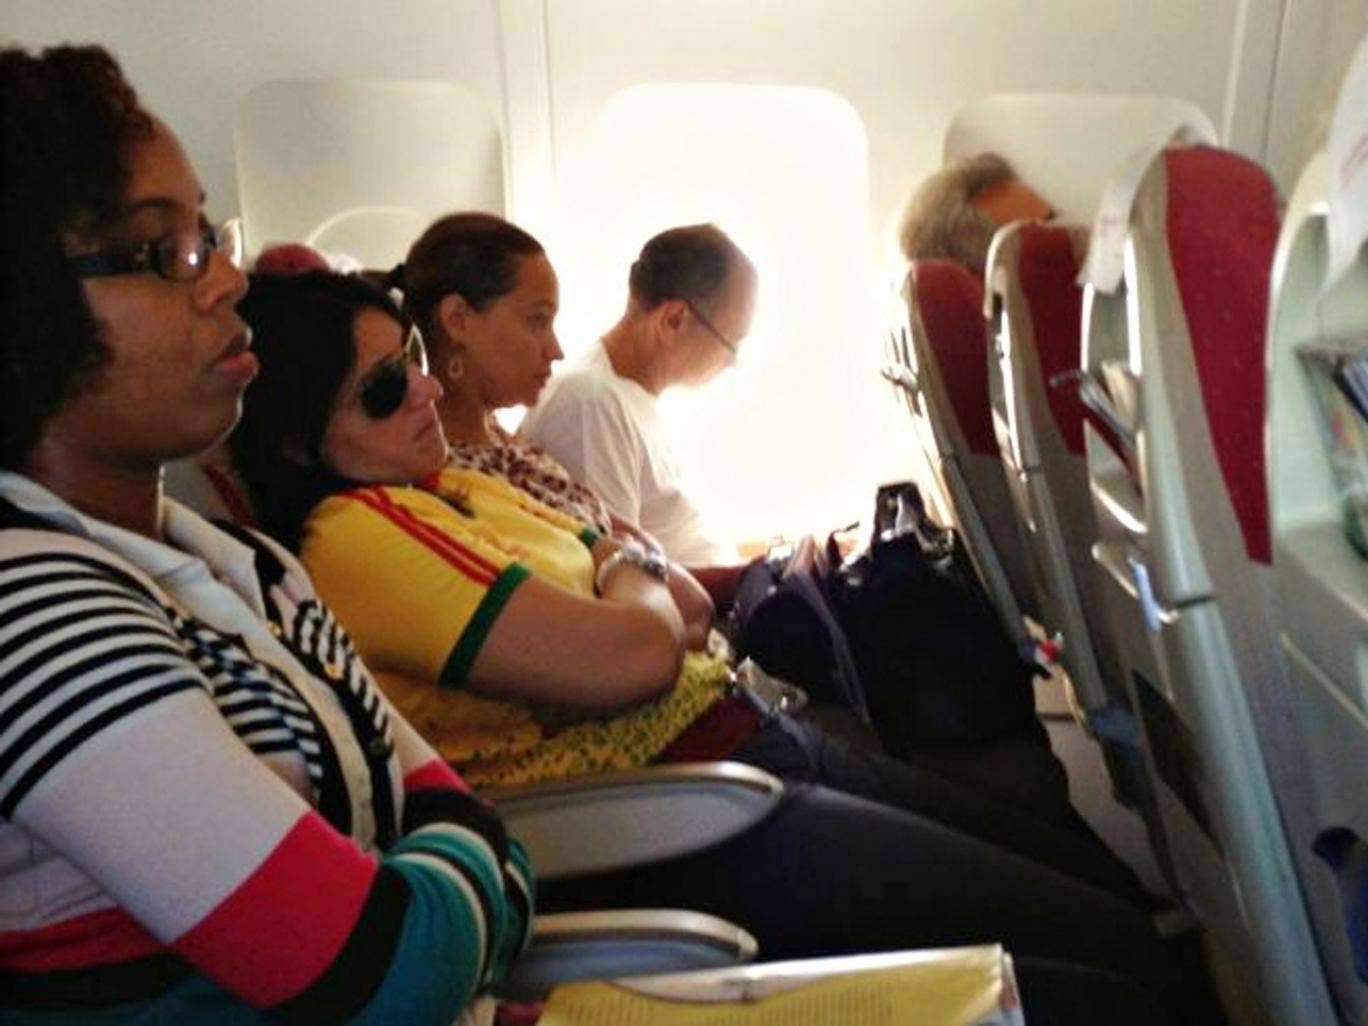 Switched on: the use of gadgets throughout flights is welcome news